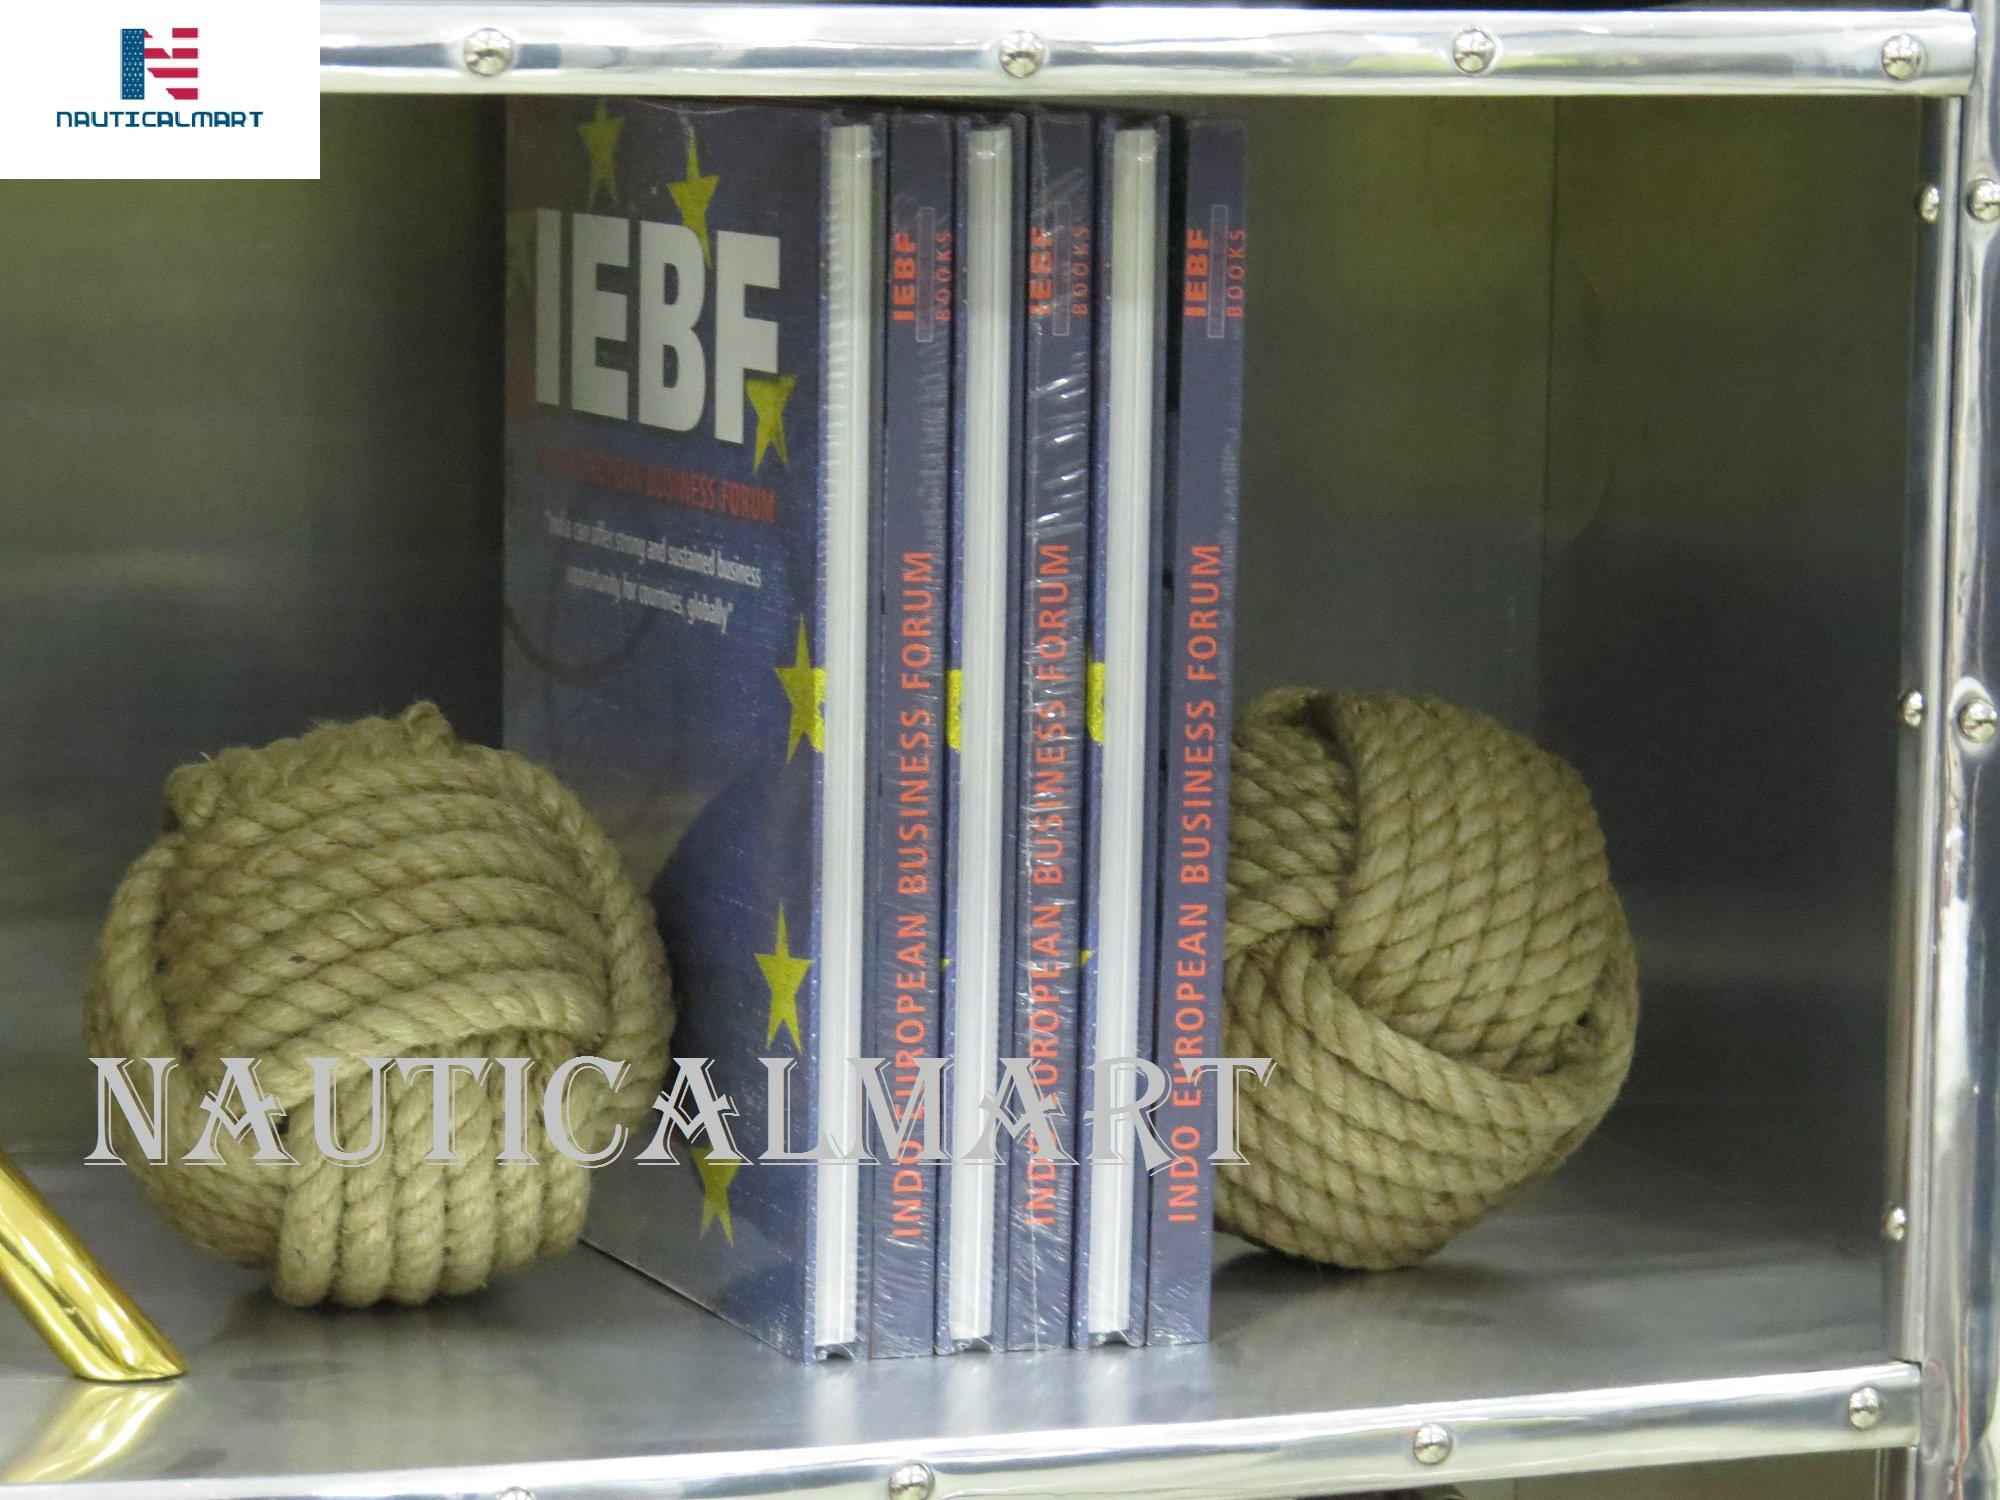 NAUTICALMART Nautical Bookends - Rope Bookends